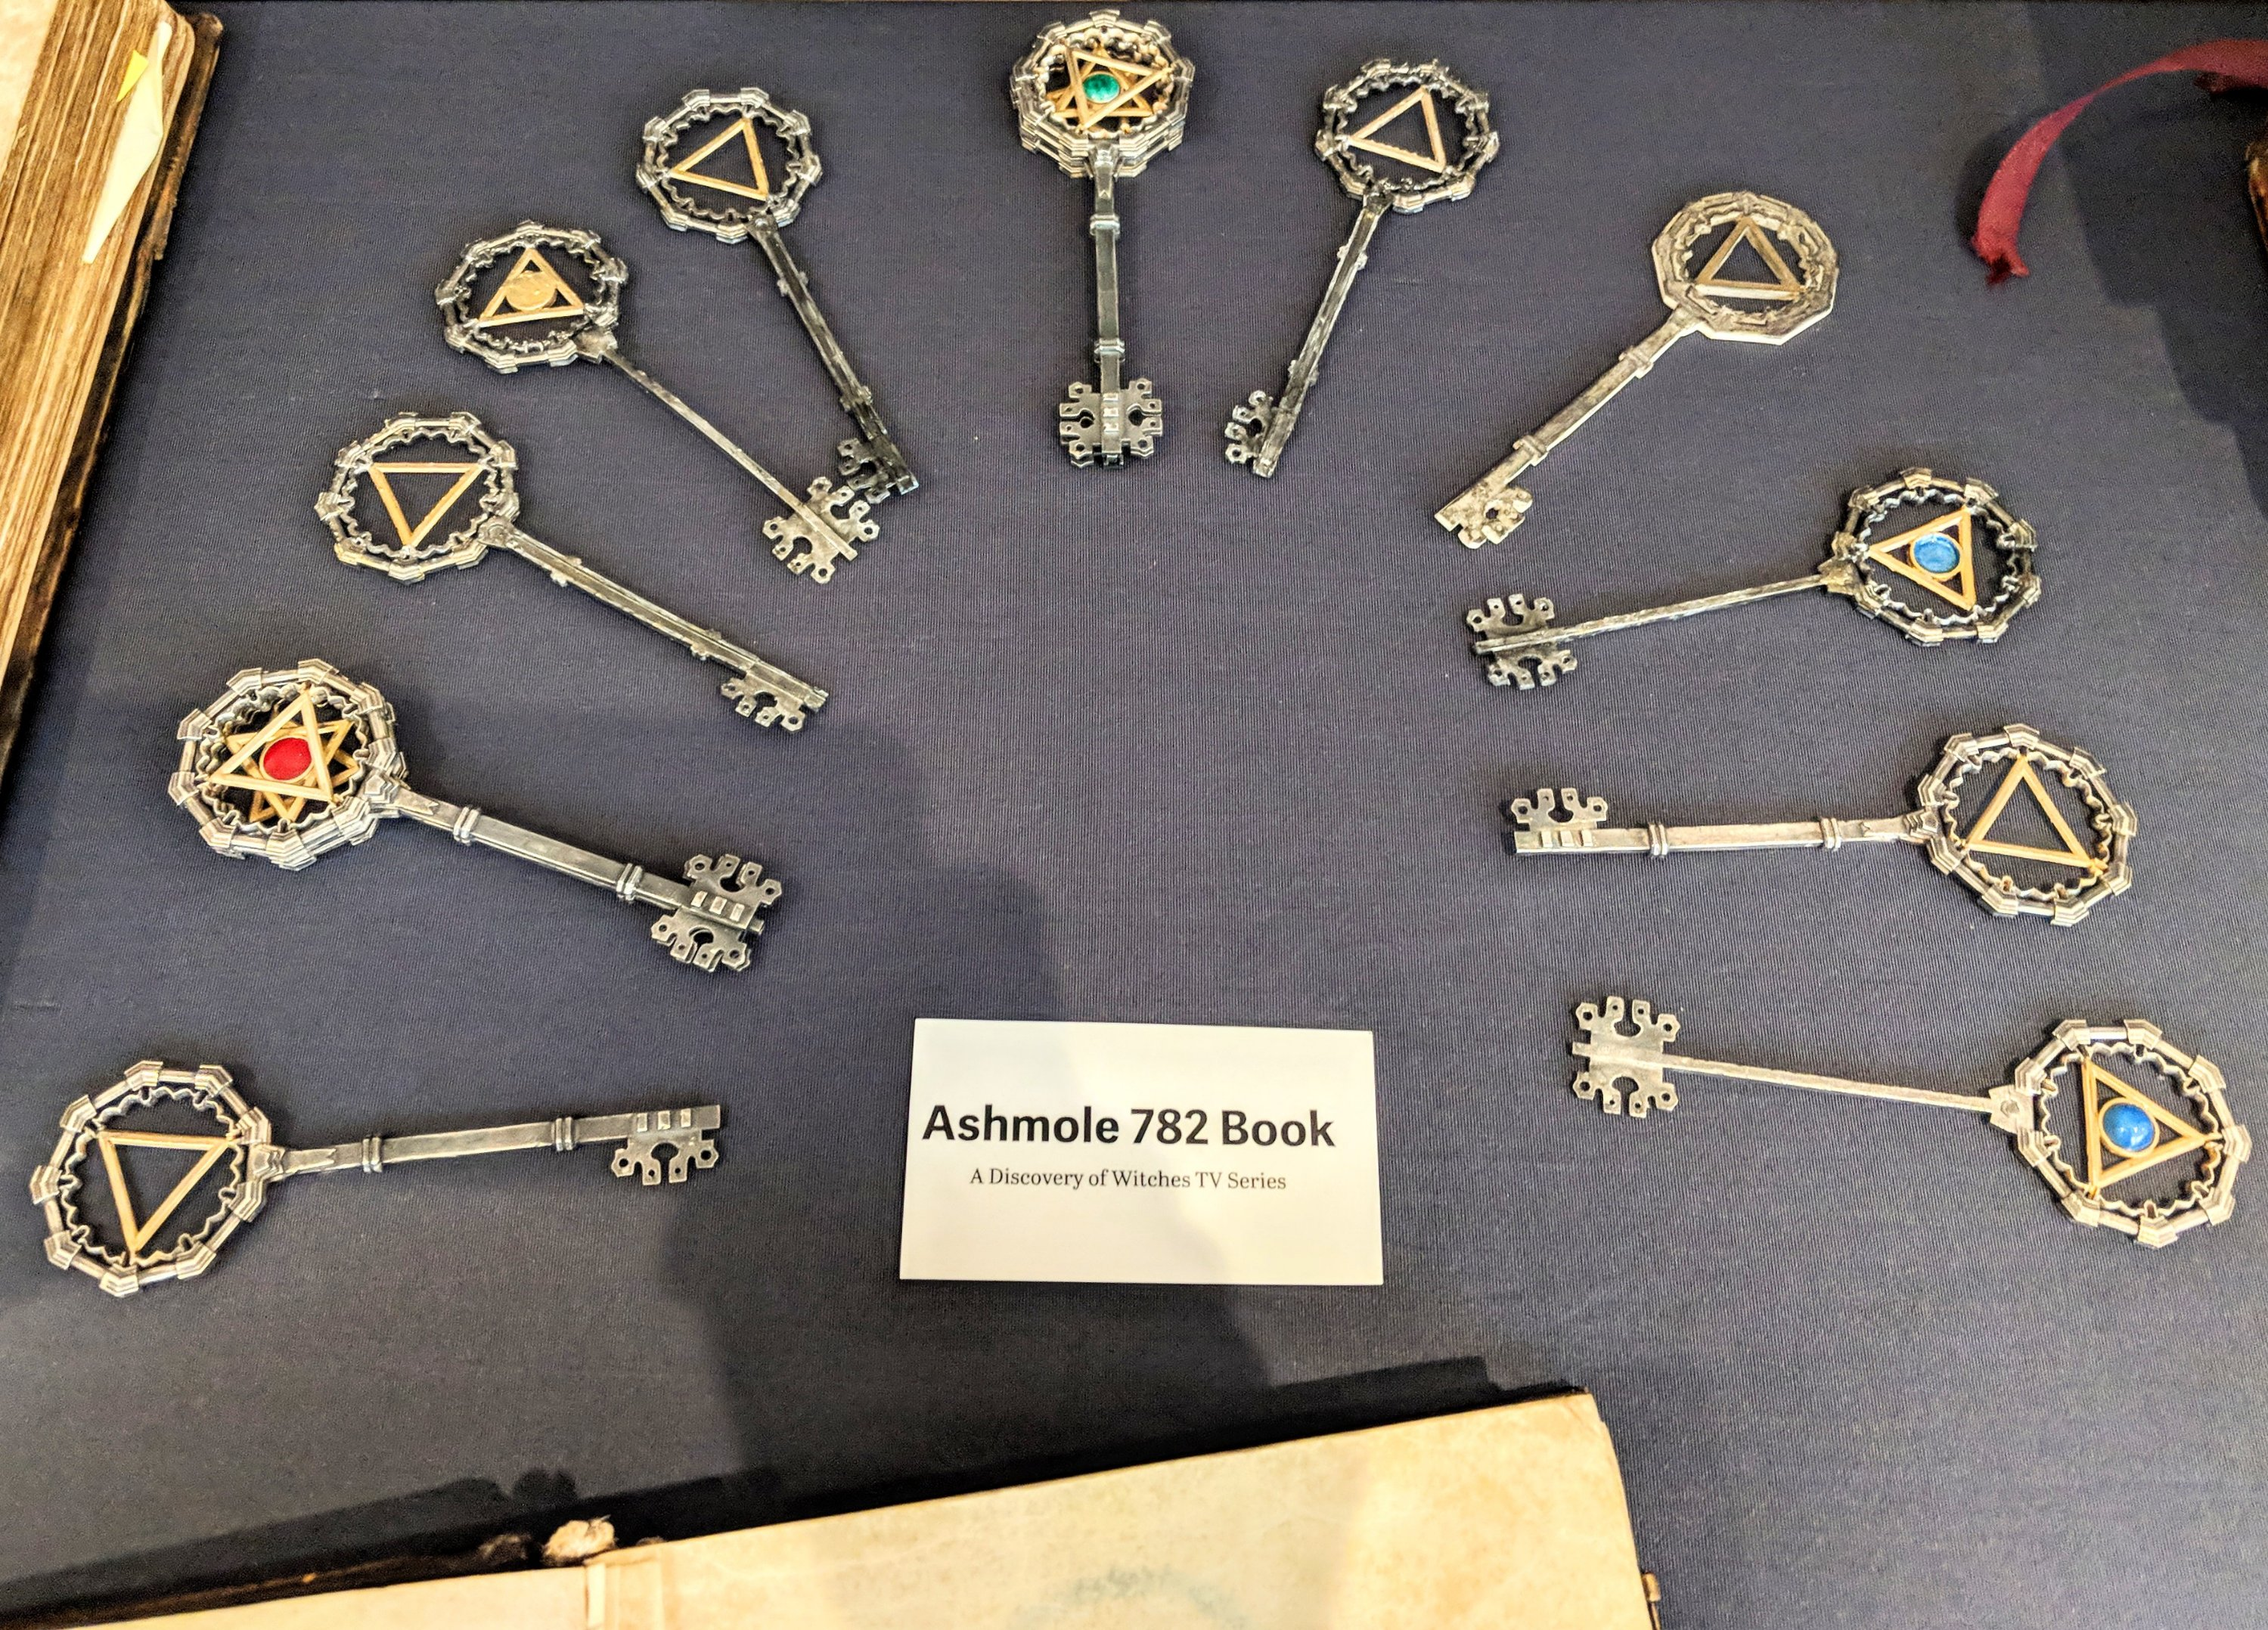 Props from the set of A Discovery of Witches TV series, including a collection of keys bearing alchemy symbols.